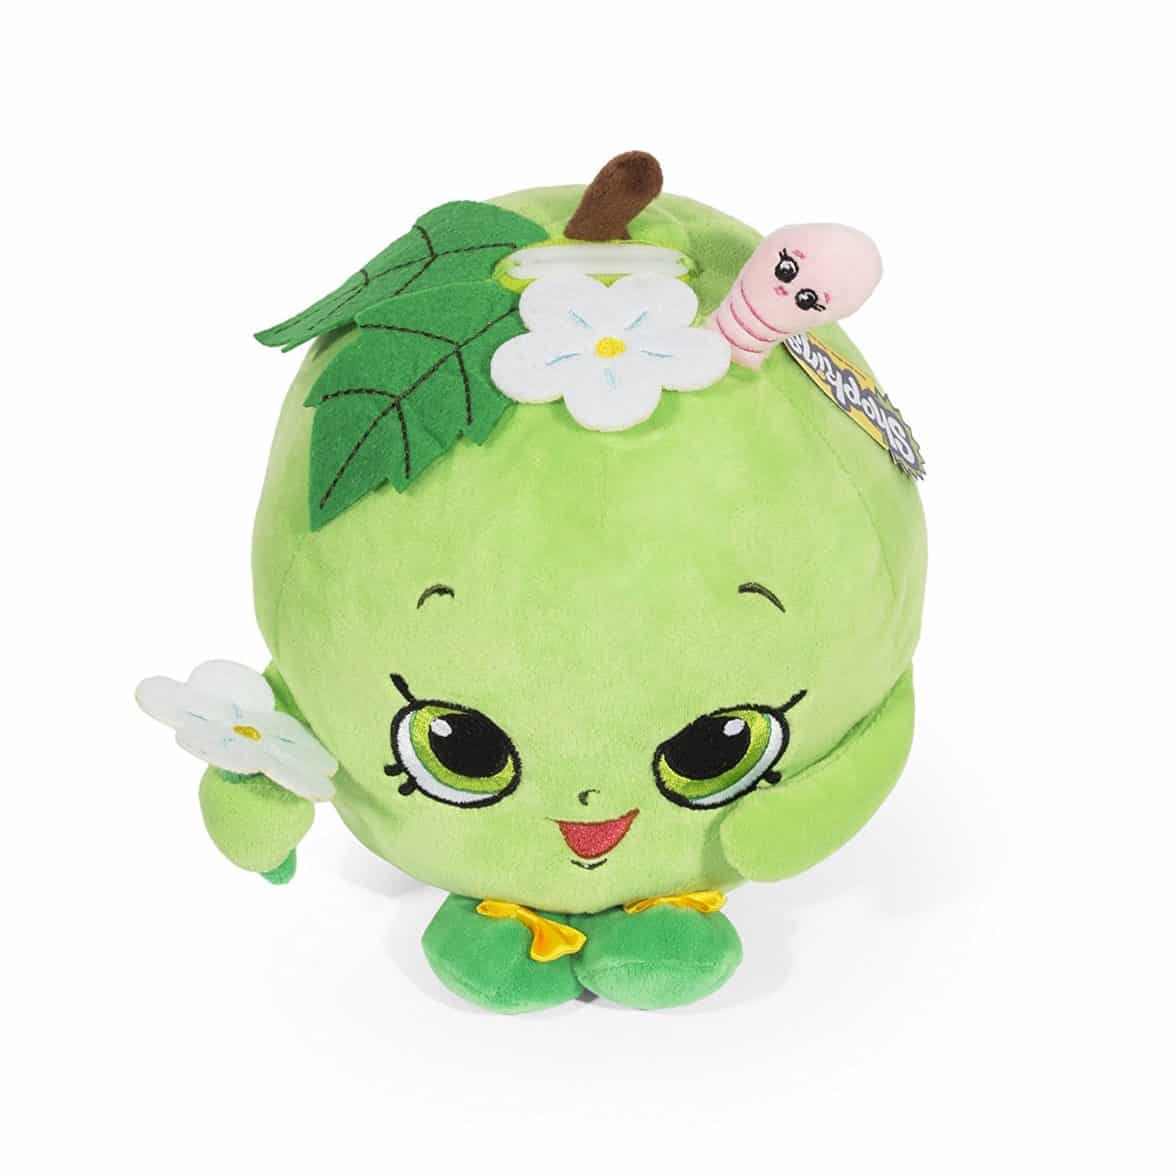 Shopkins Apple Blossom Plush Coin Bank